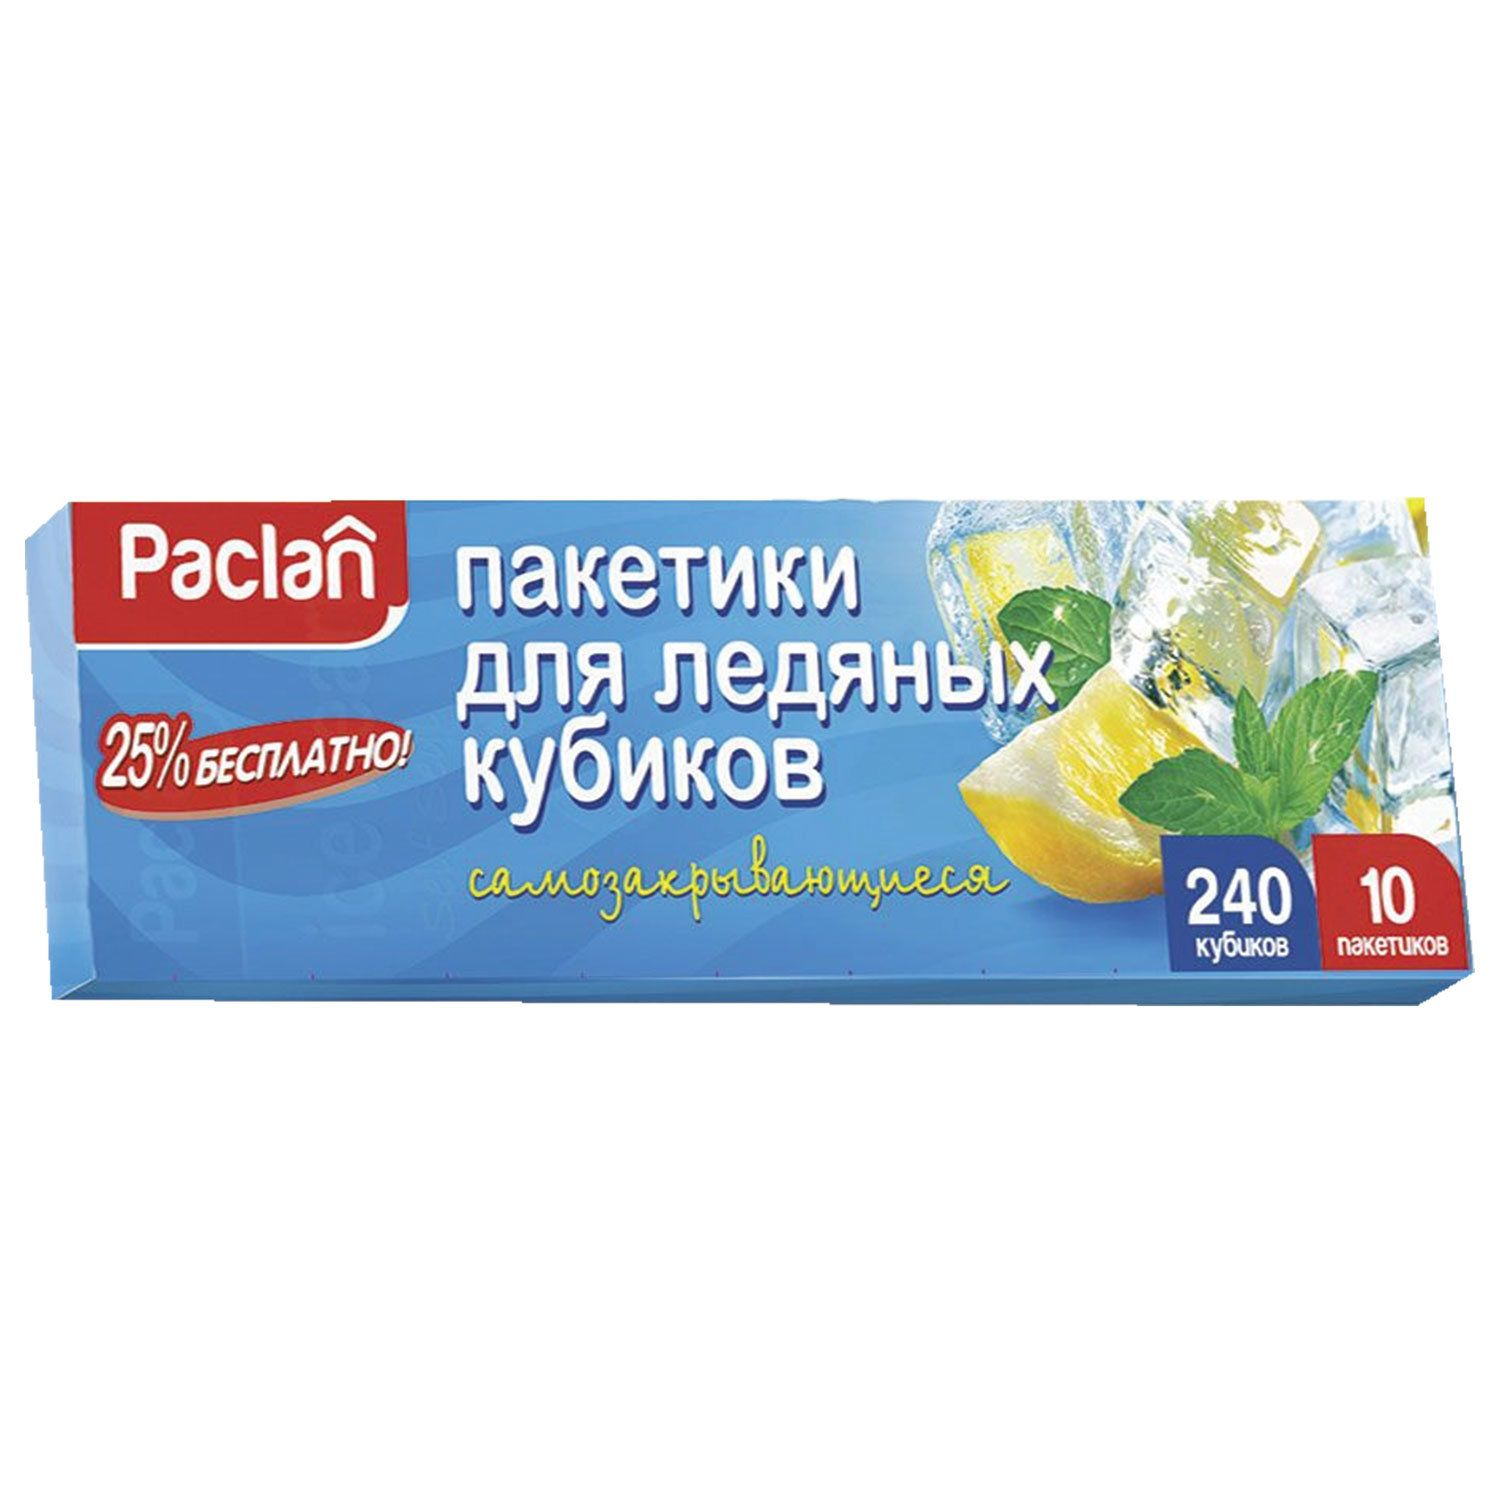 PACLAN / Ice cube bags, 10 pieces of 24 cells (240 cubes)